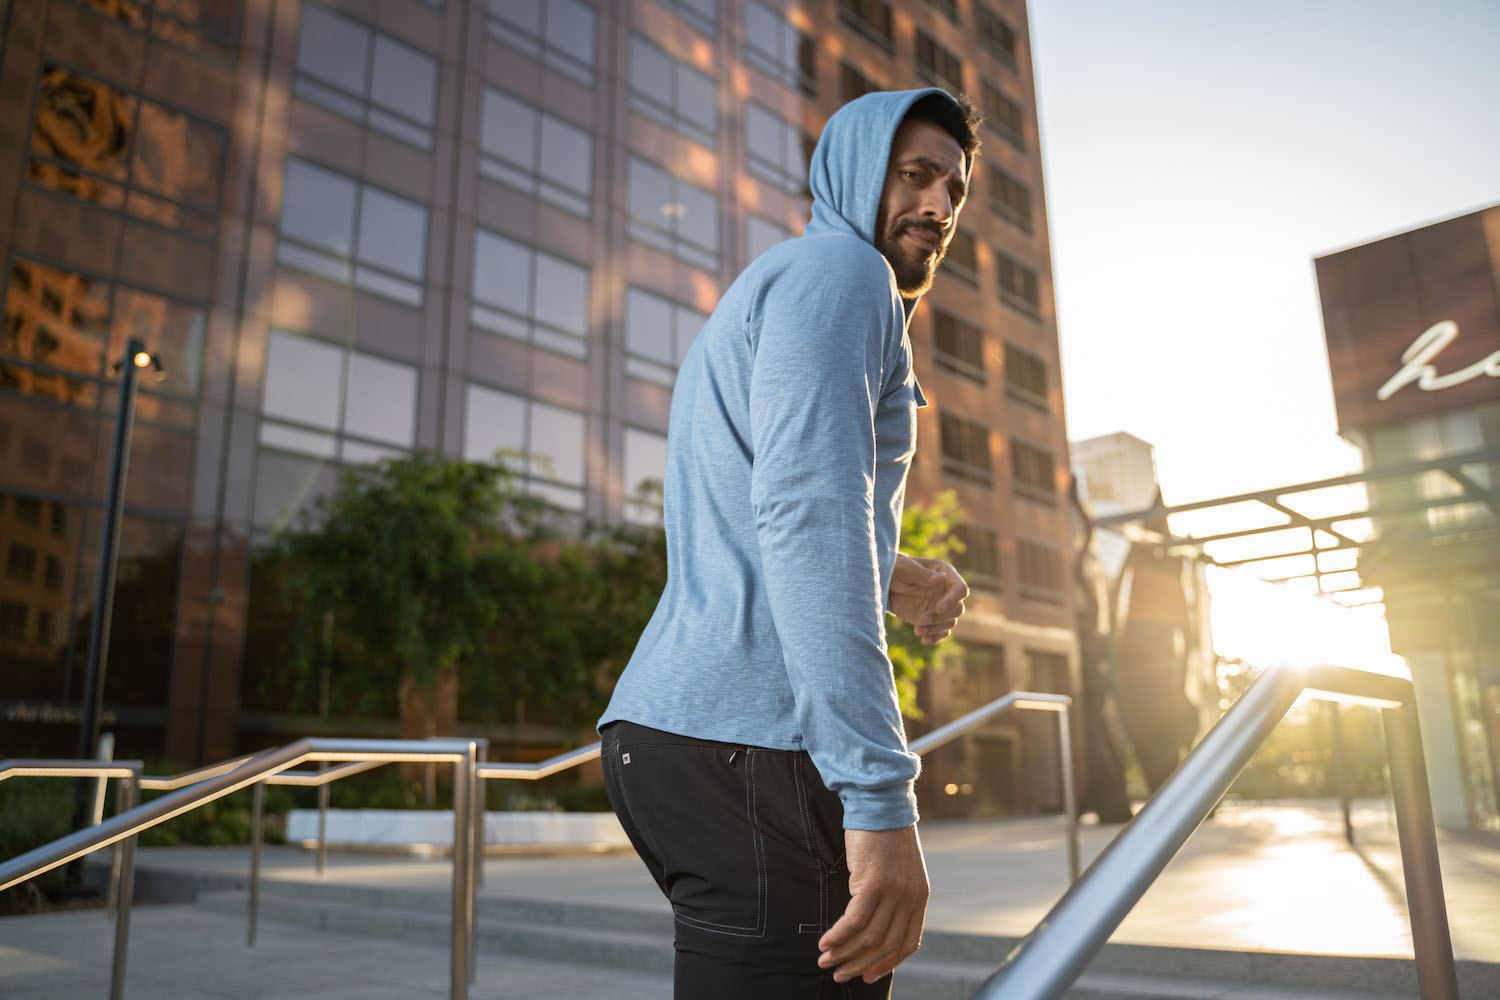 Lifestyle-On-Location-Model-Onmodel-Damion-Lloyd-Photography-Commercial-Product-Apparel-Clothing-Los-Angeles-Orange-County-male-man-GLYDER-sportswear-outdoor-city-blue-hoodie-sunset-back